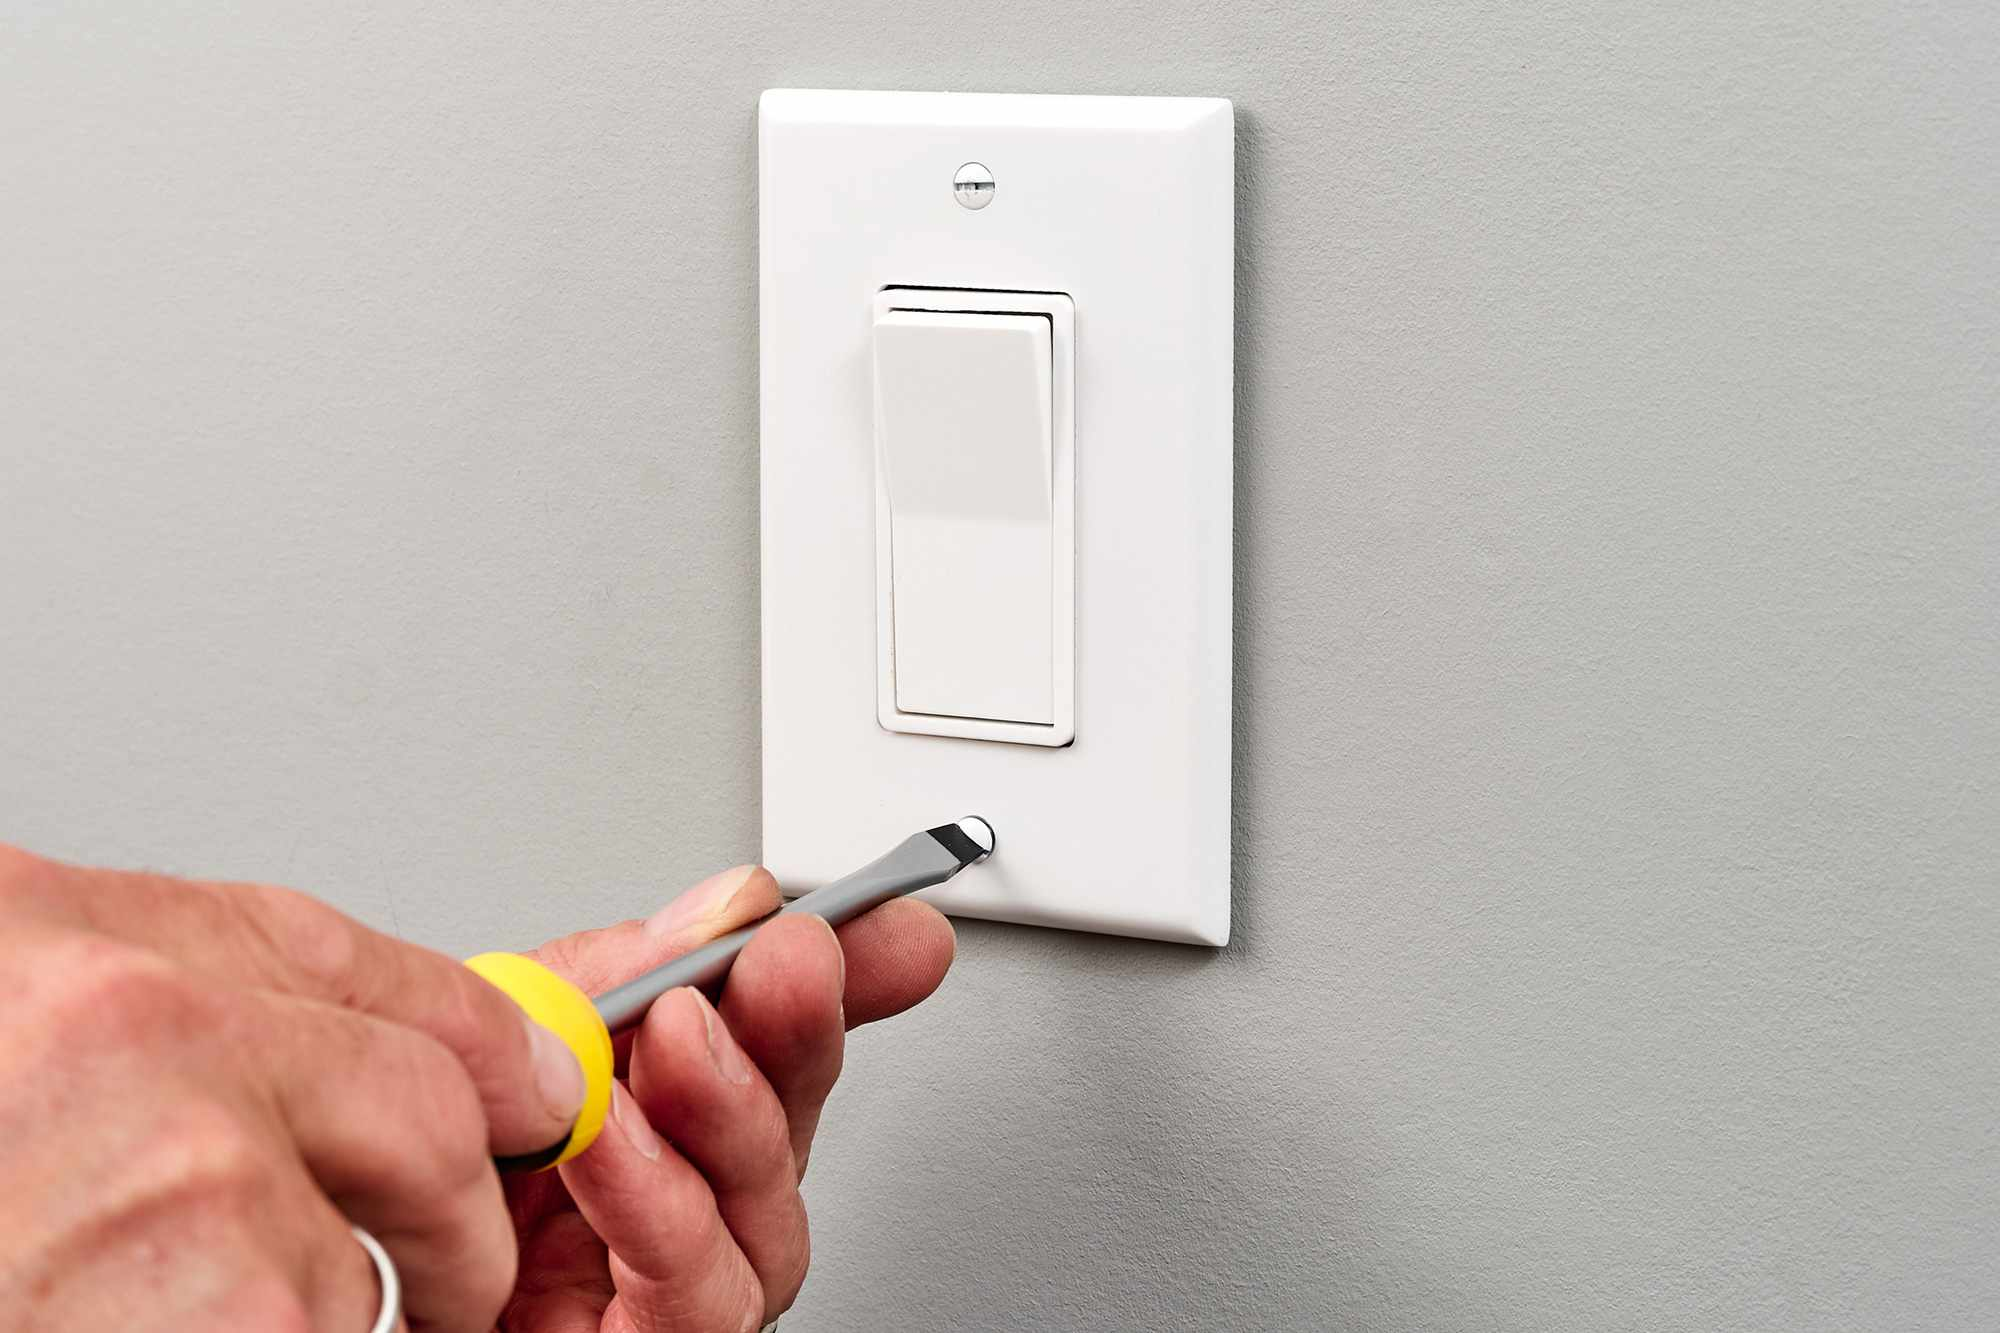 Single-pole switch faceplate installed with screwdriver